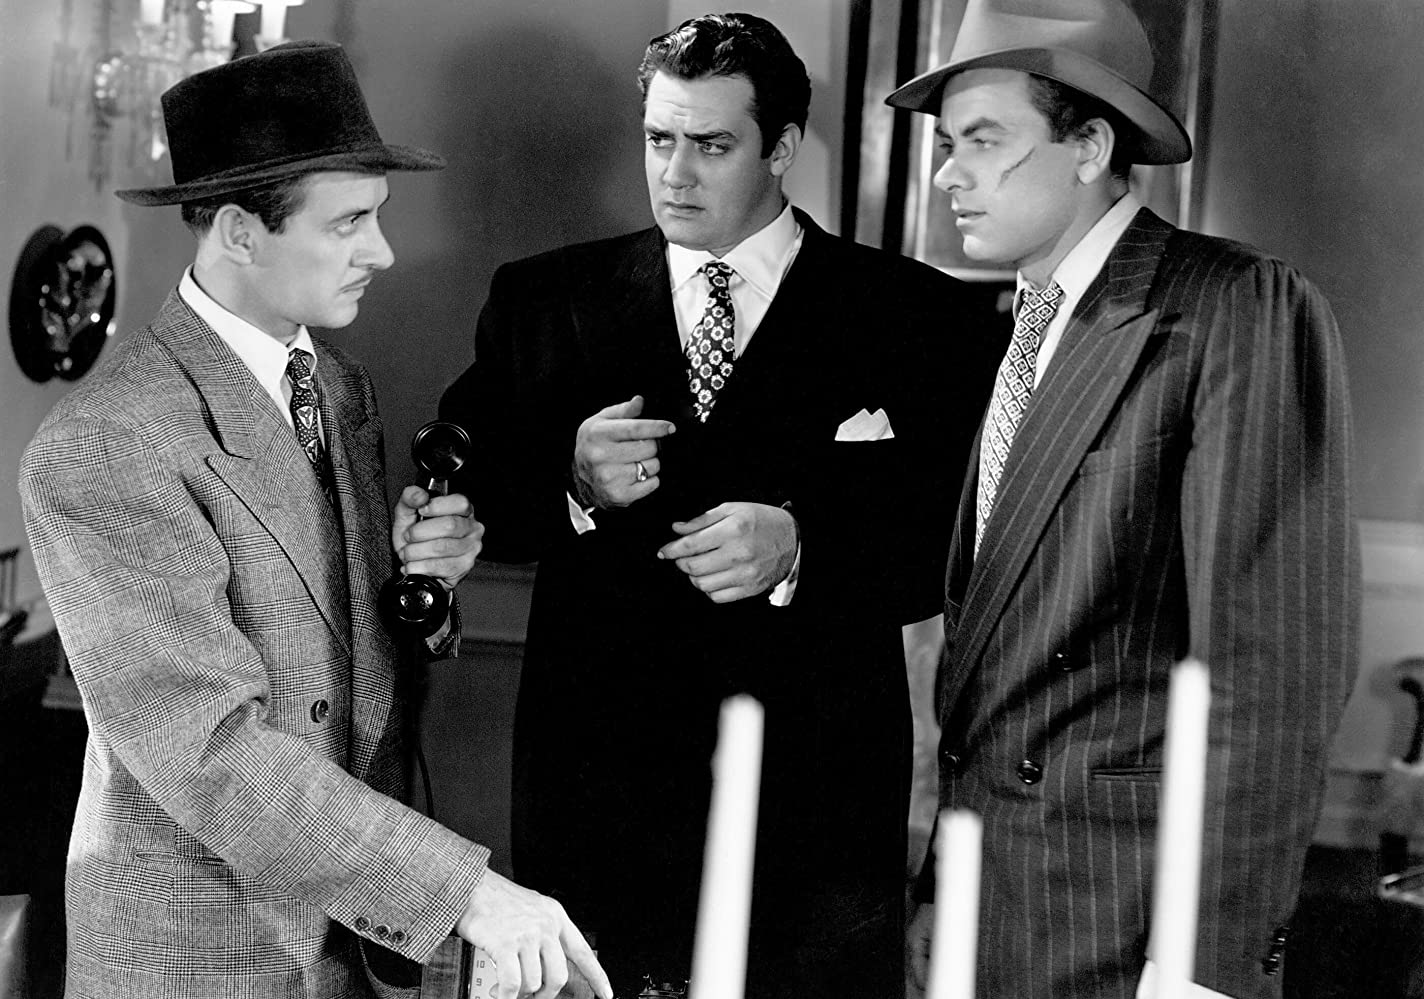 Raymond Burr, Curt Conway, and John Ireland in Raw Deal (1948)